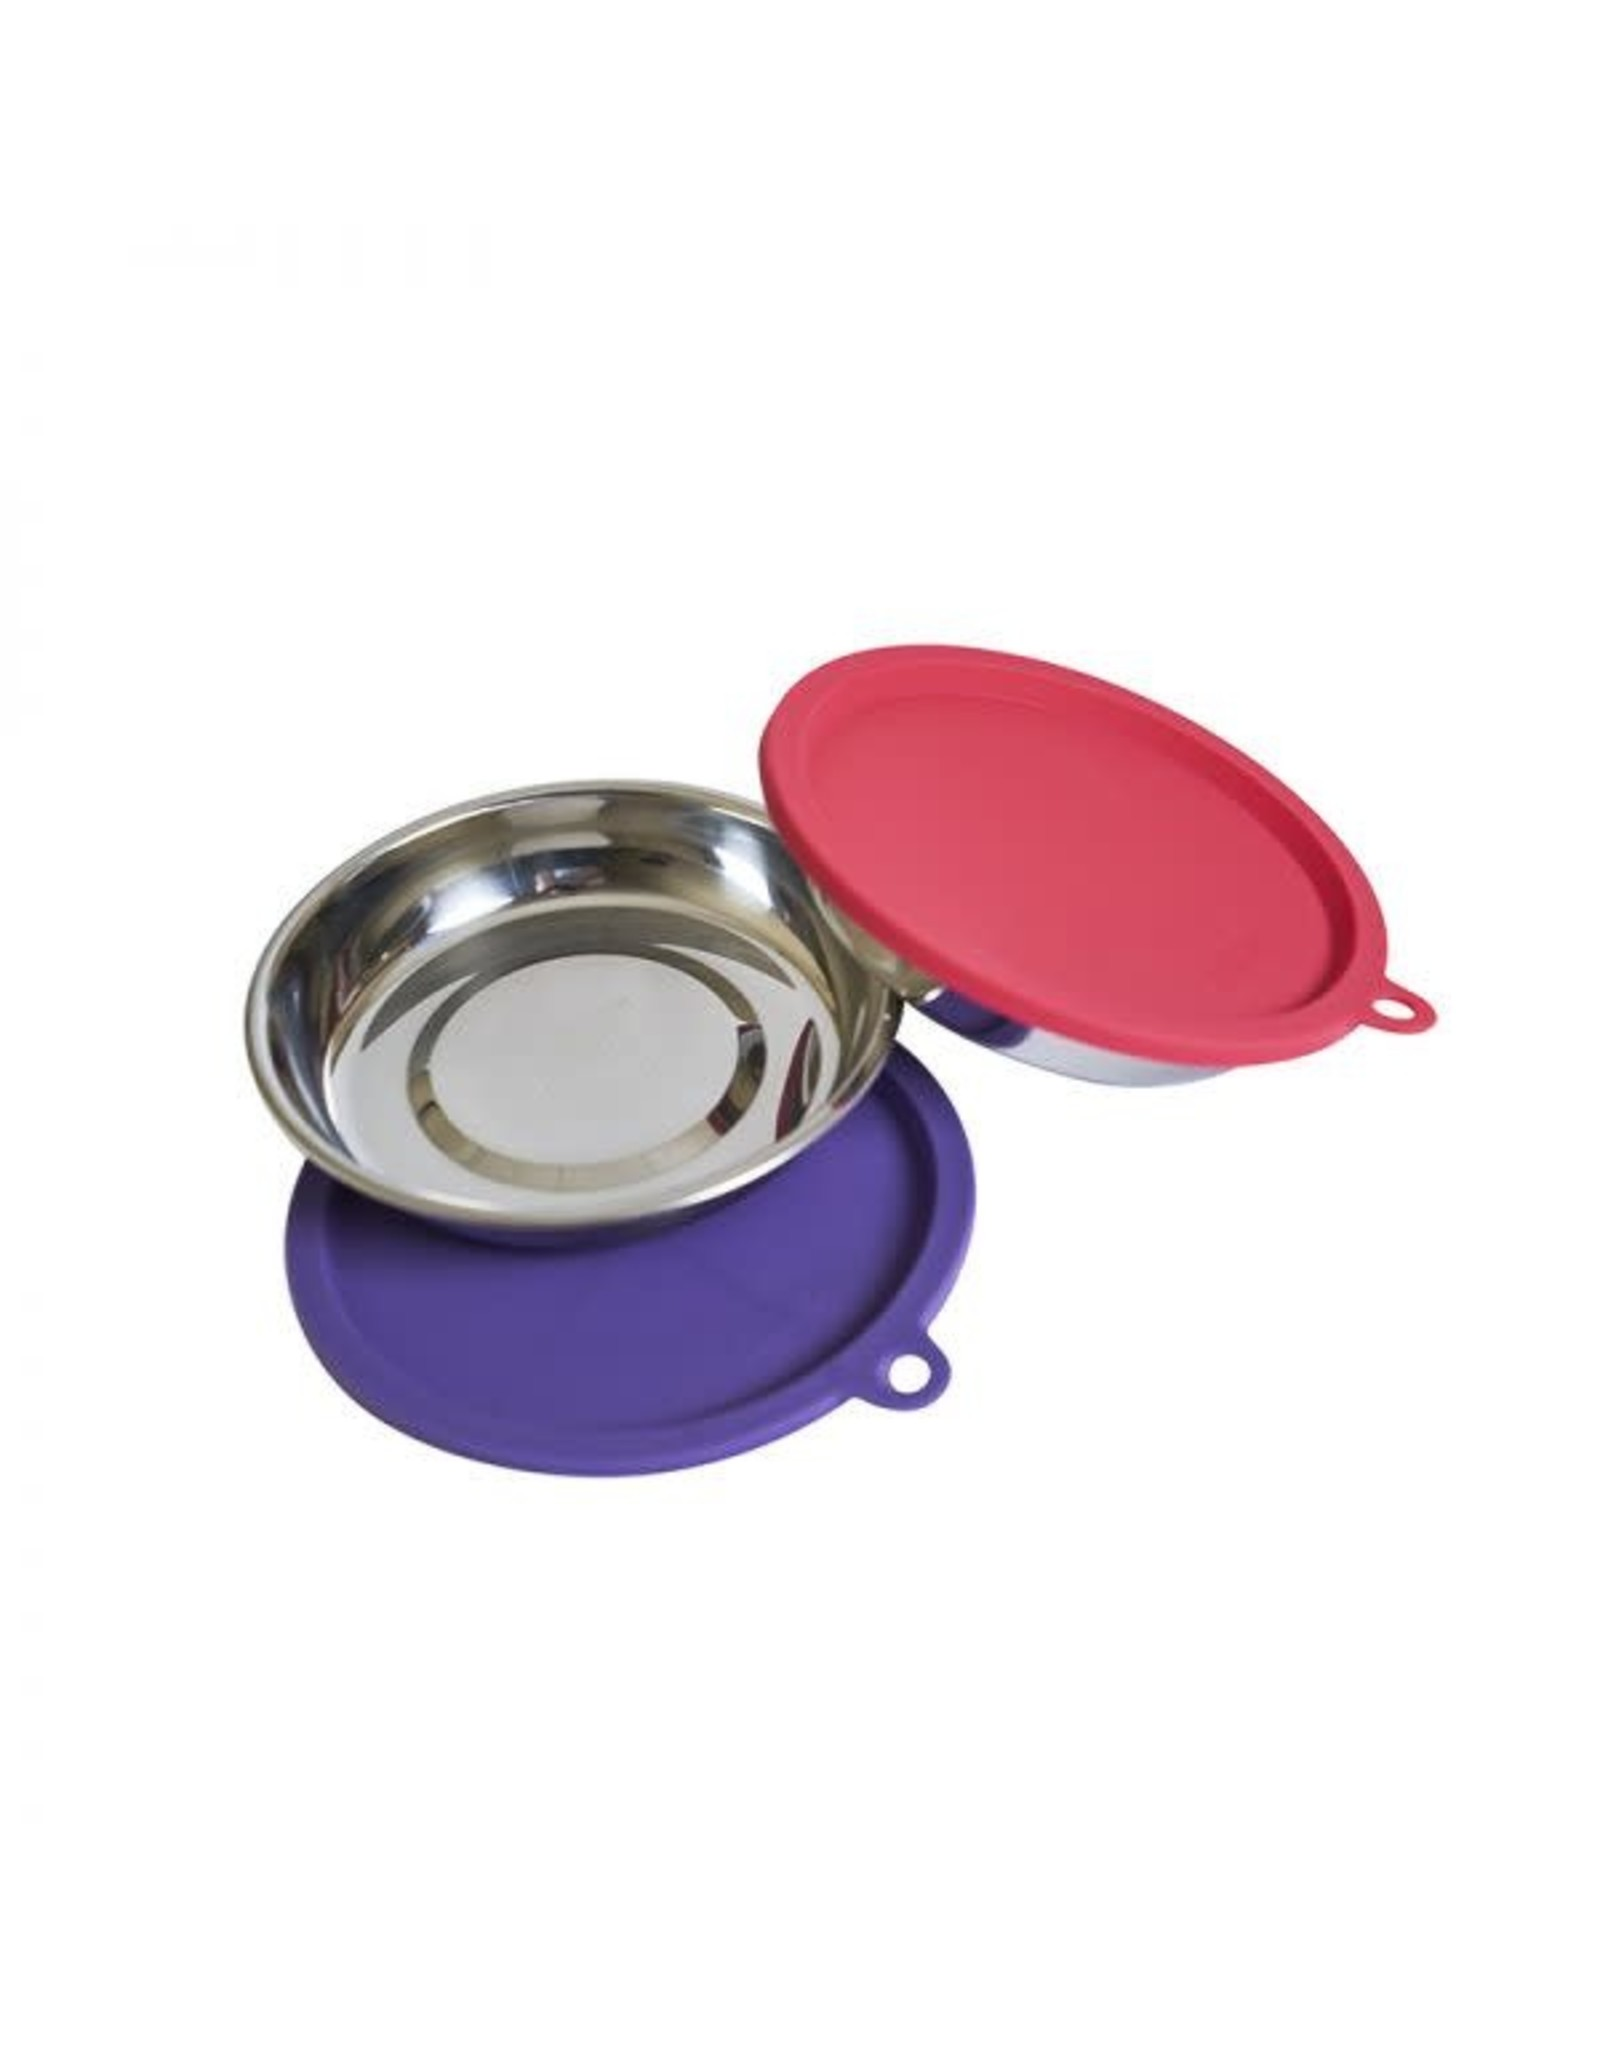 Messy Cats Messy Cats 4pc Set 2 SS Bowls w/ Silicone Lids